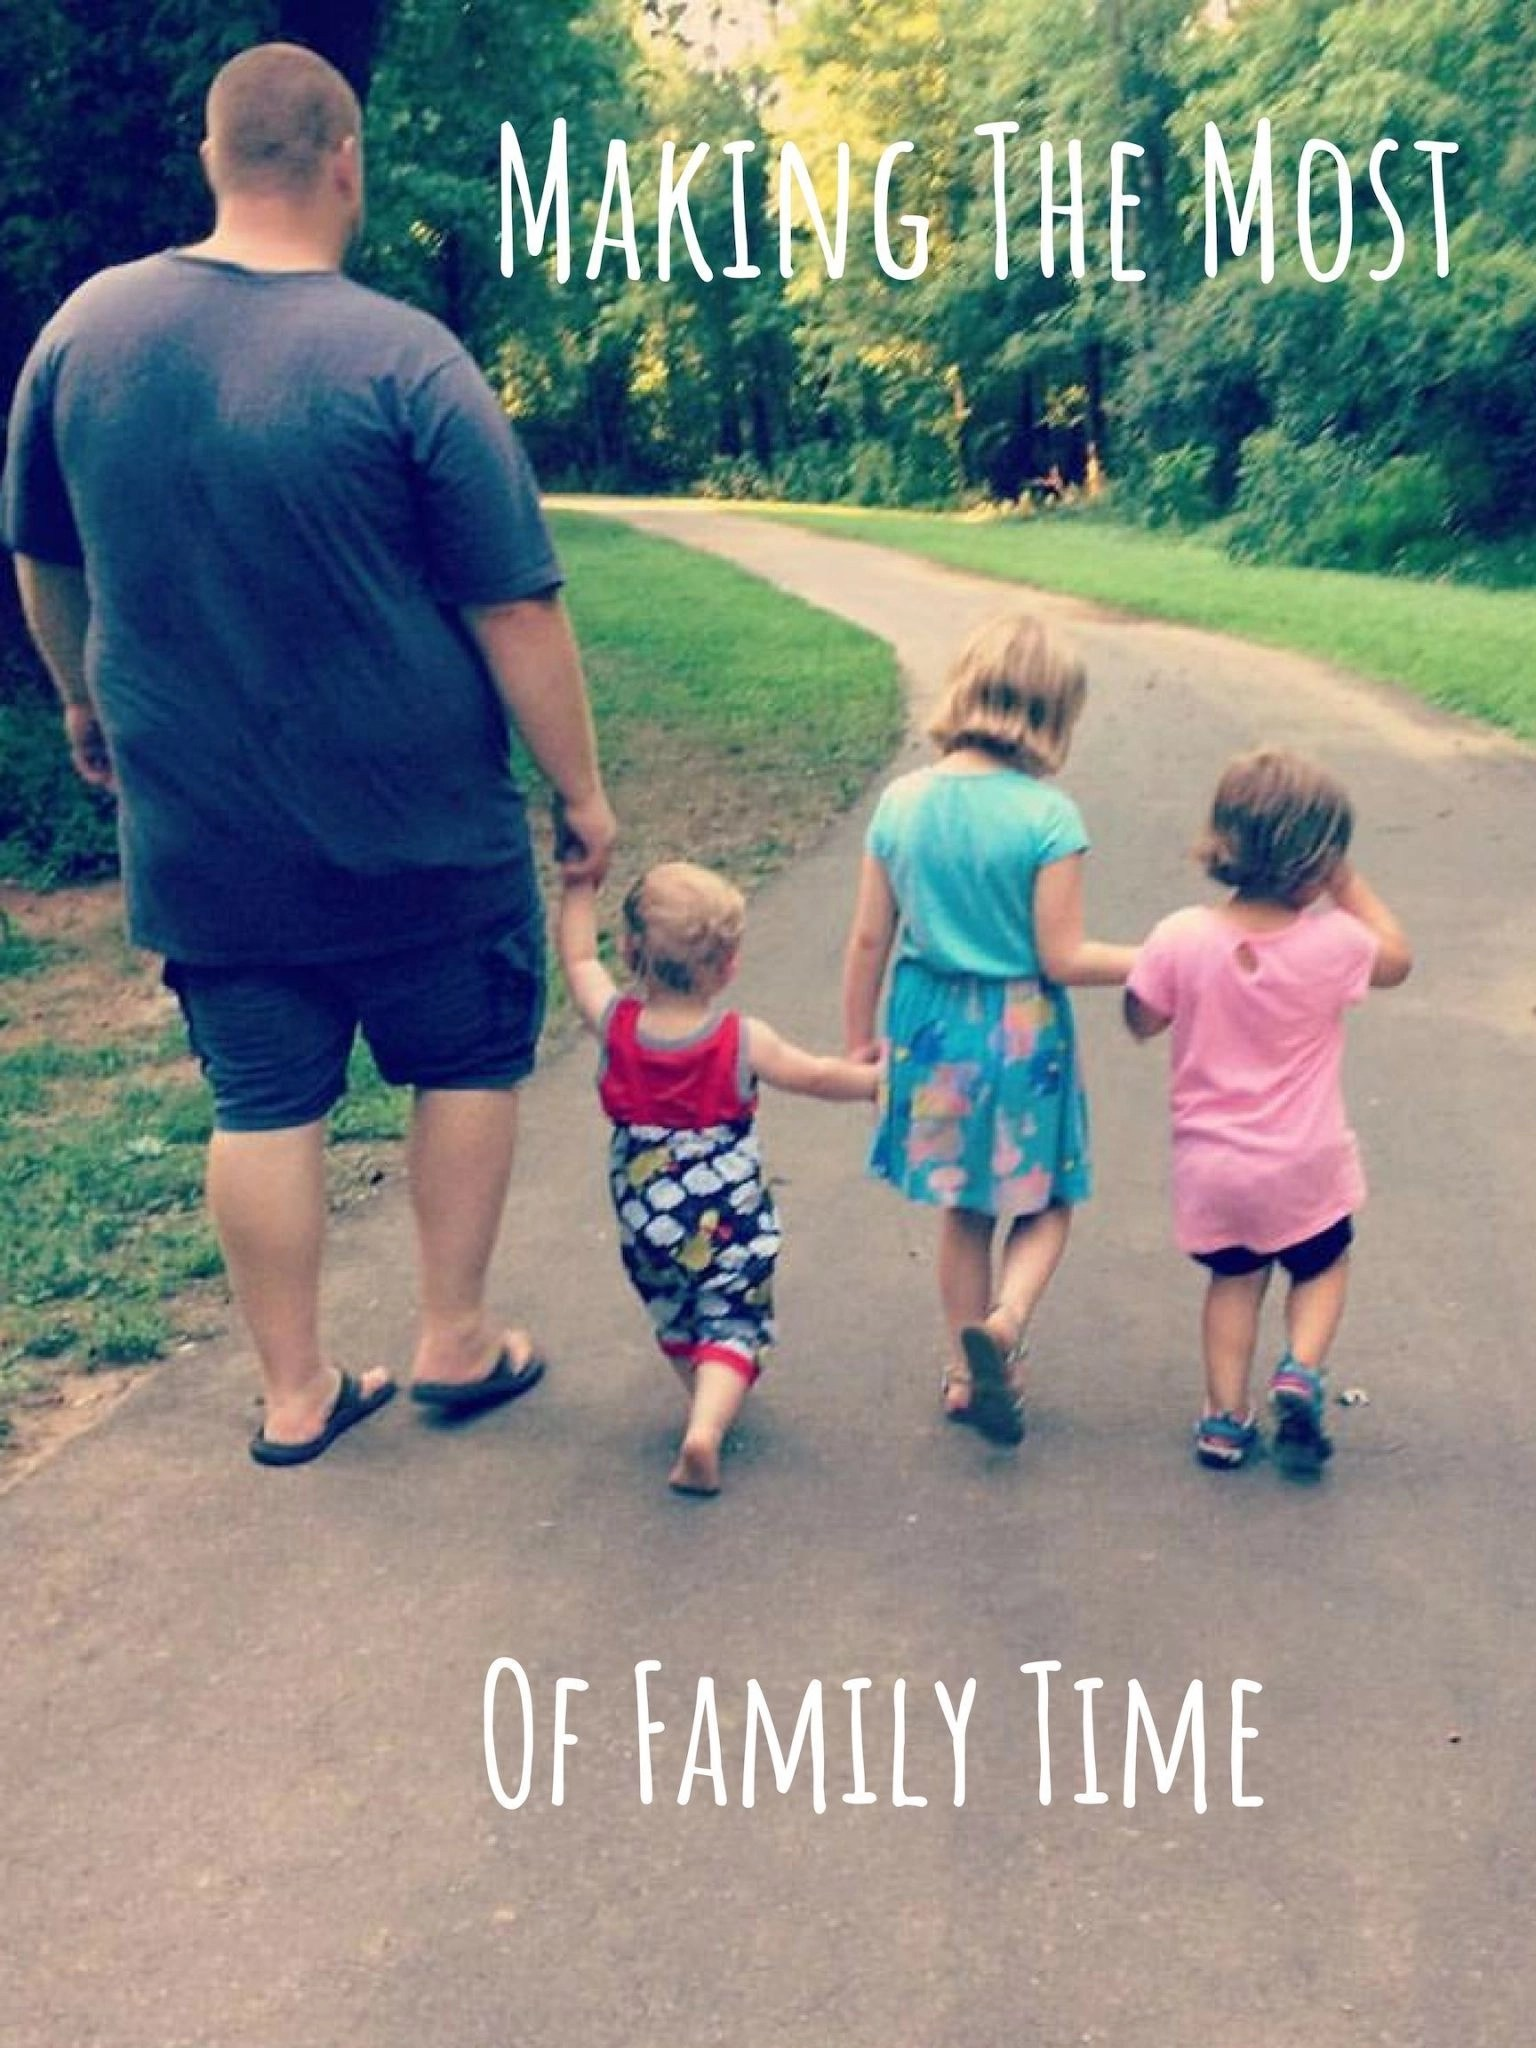 Making The Most Of Family Time